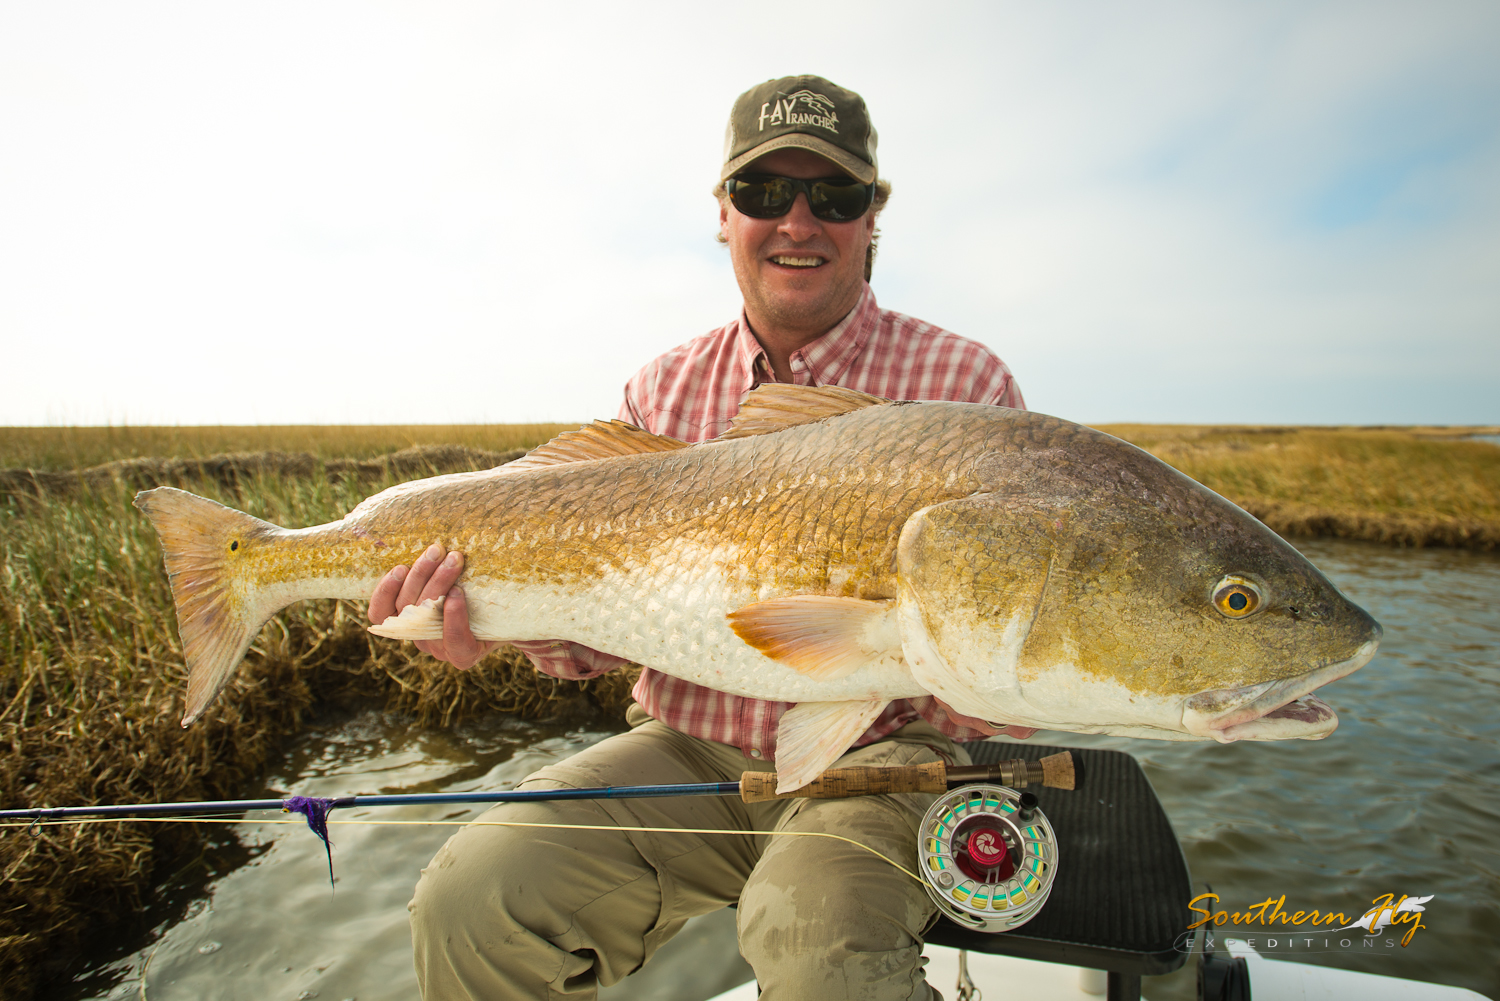 Sight fishing Louisiana with Southern Fly Expeditions